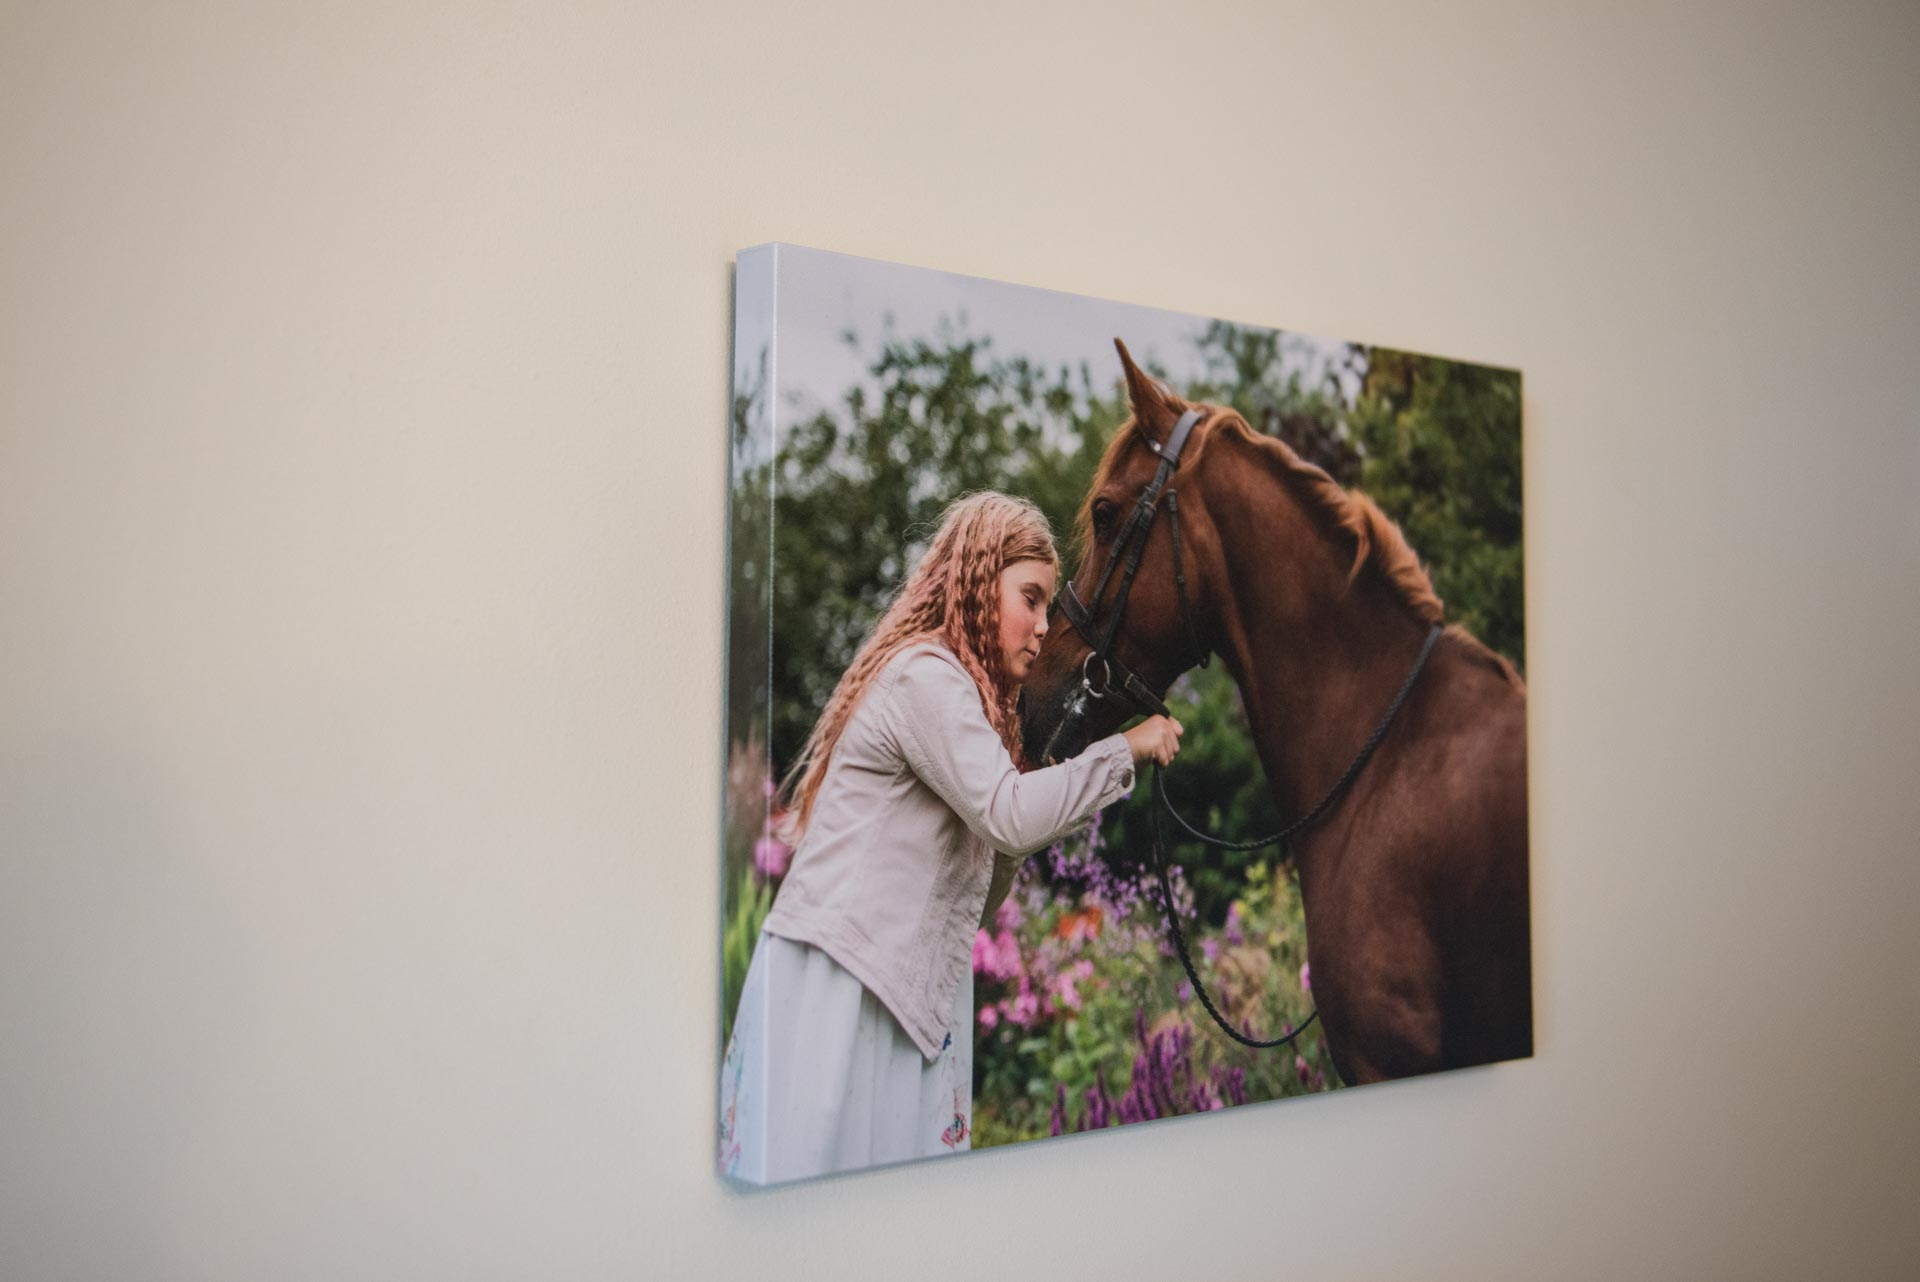 Order a Canvas from your photoshoot from Jessie Lee Photography